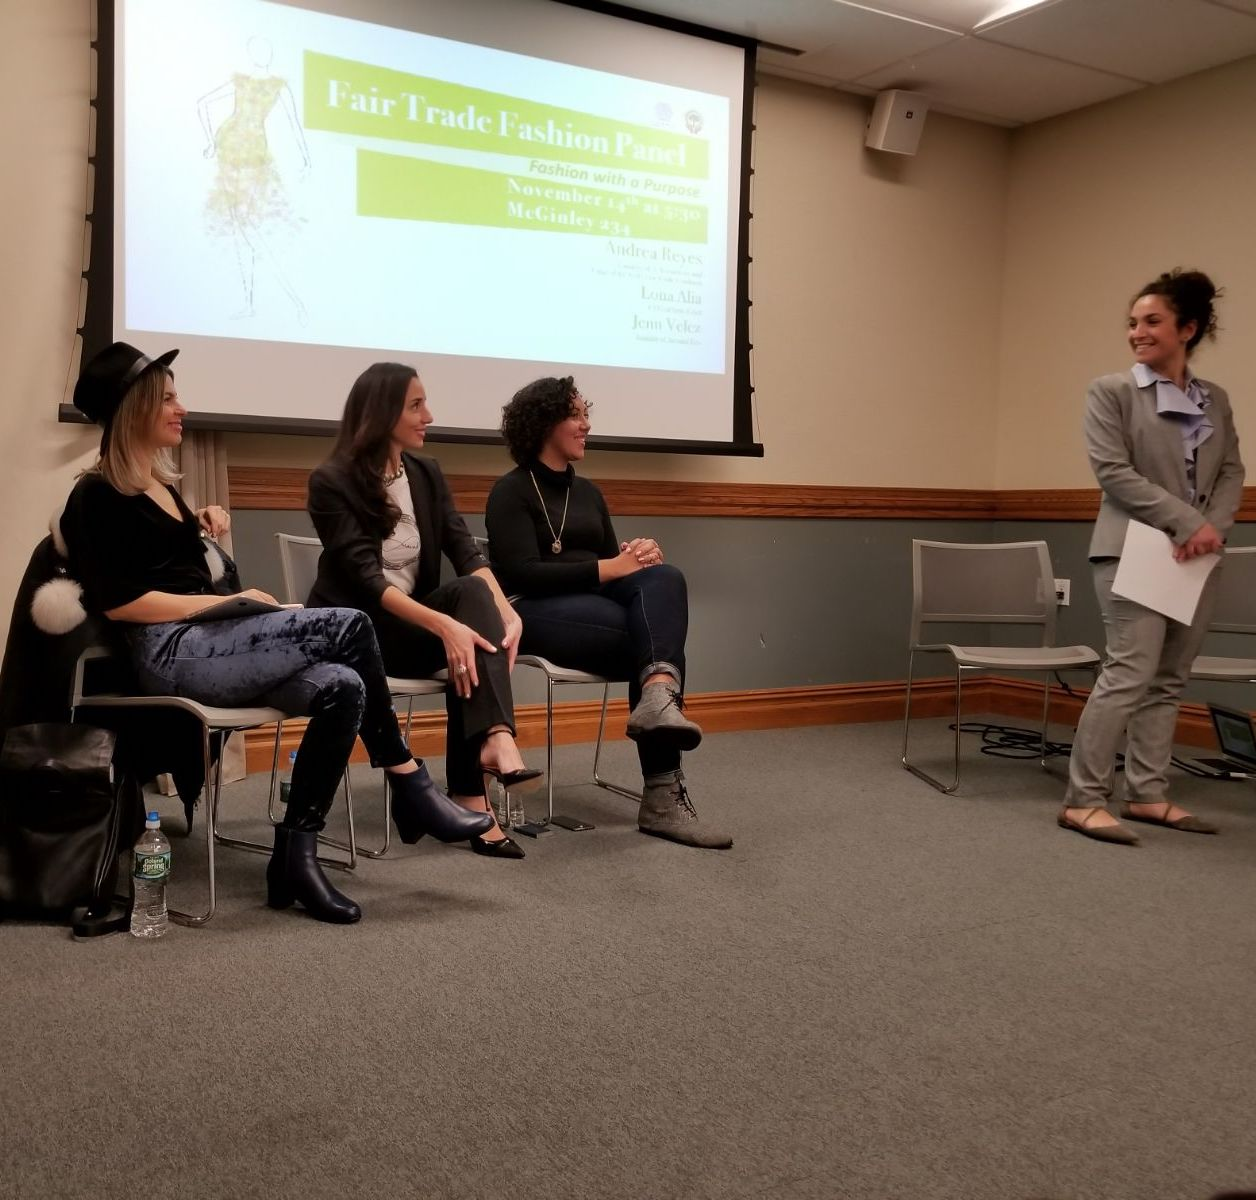 Fair Trade Panel at Fordham University around eco and nyc fair trade coalition